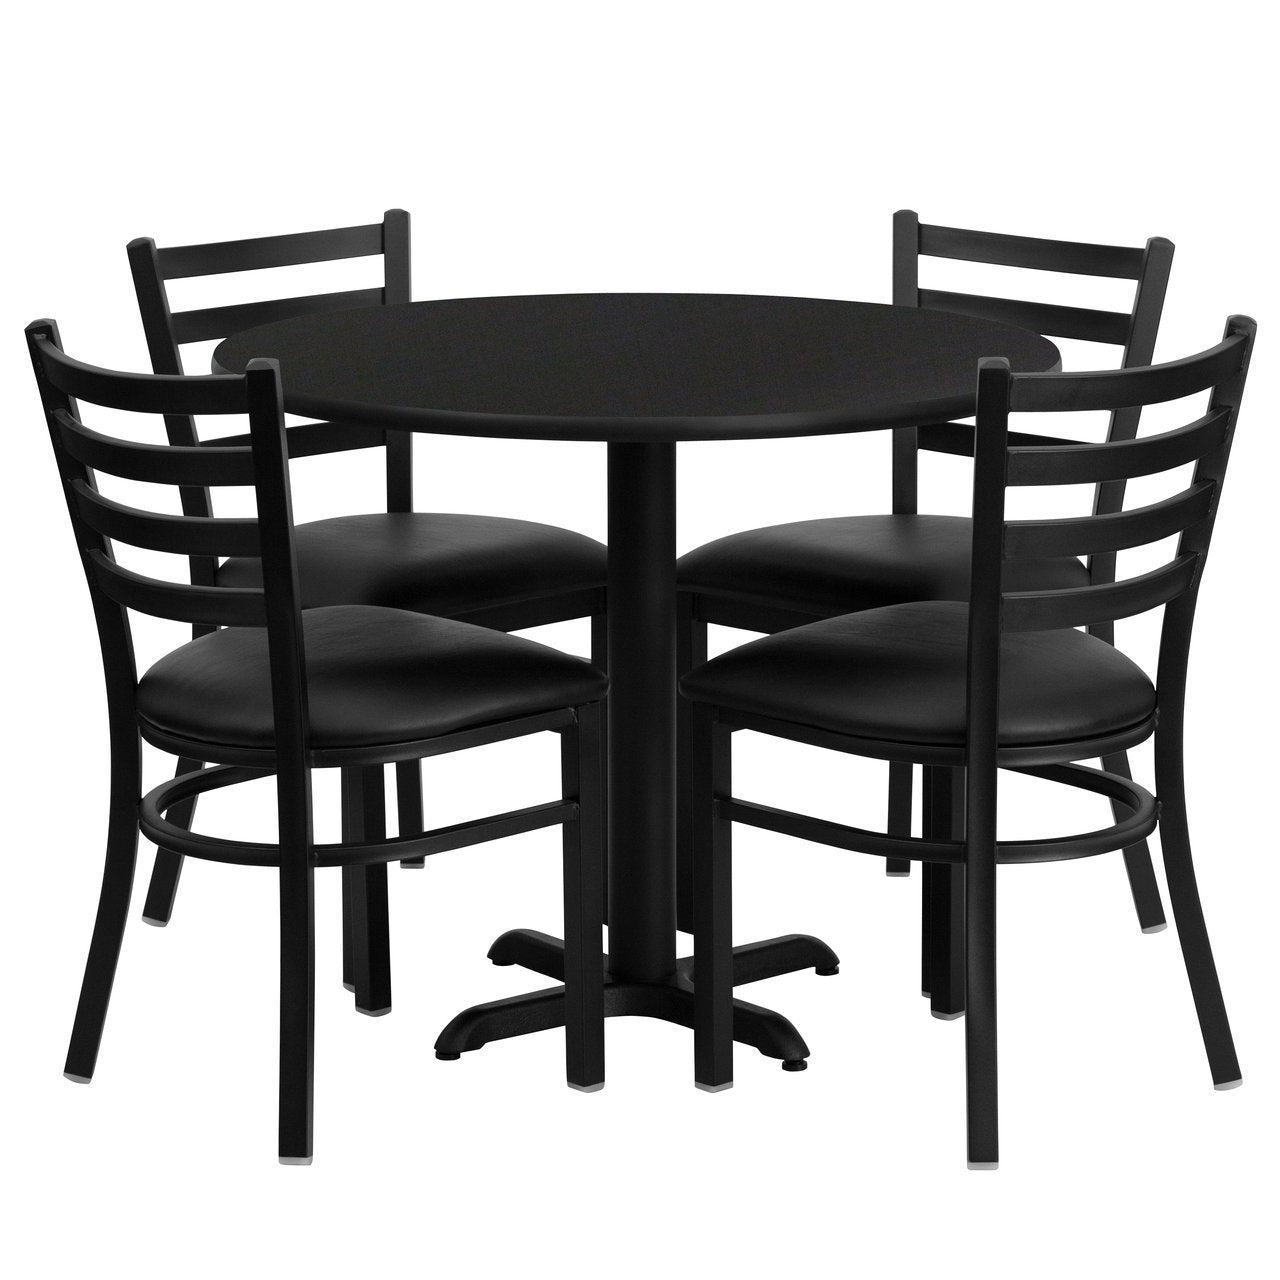 STANDARD HEIGHT TABLE SETS